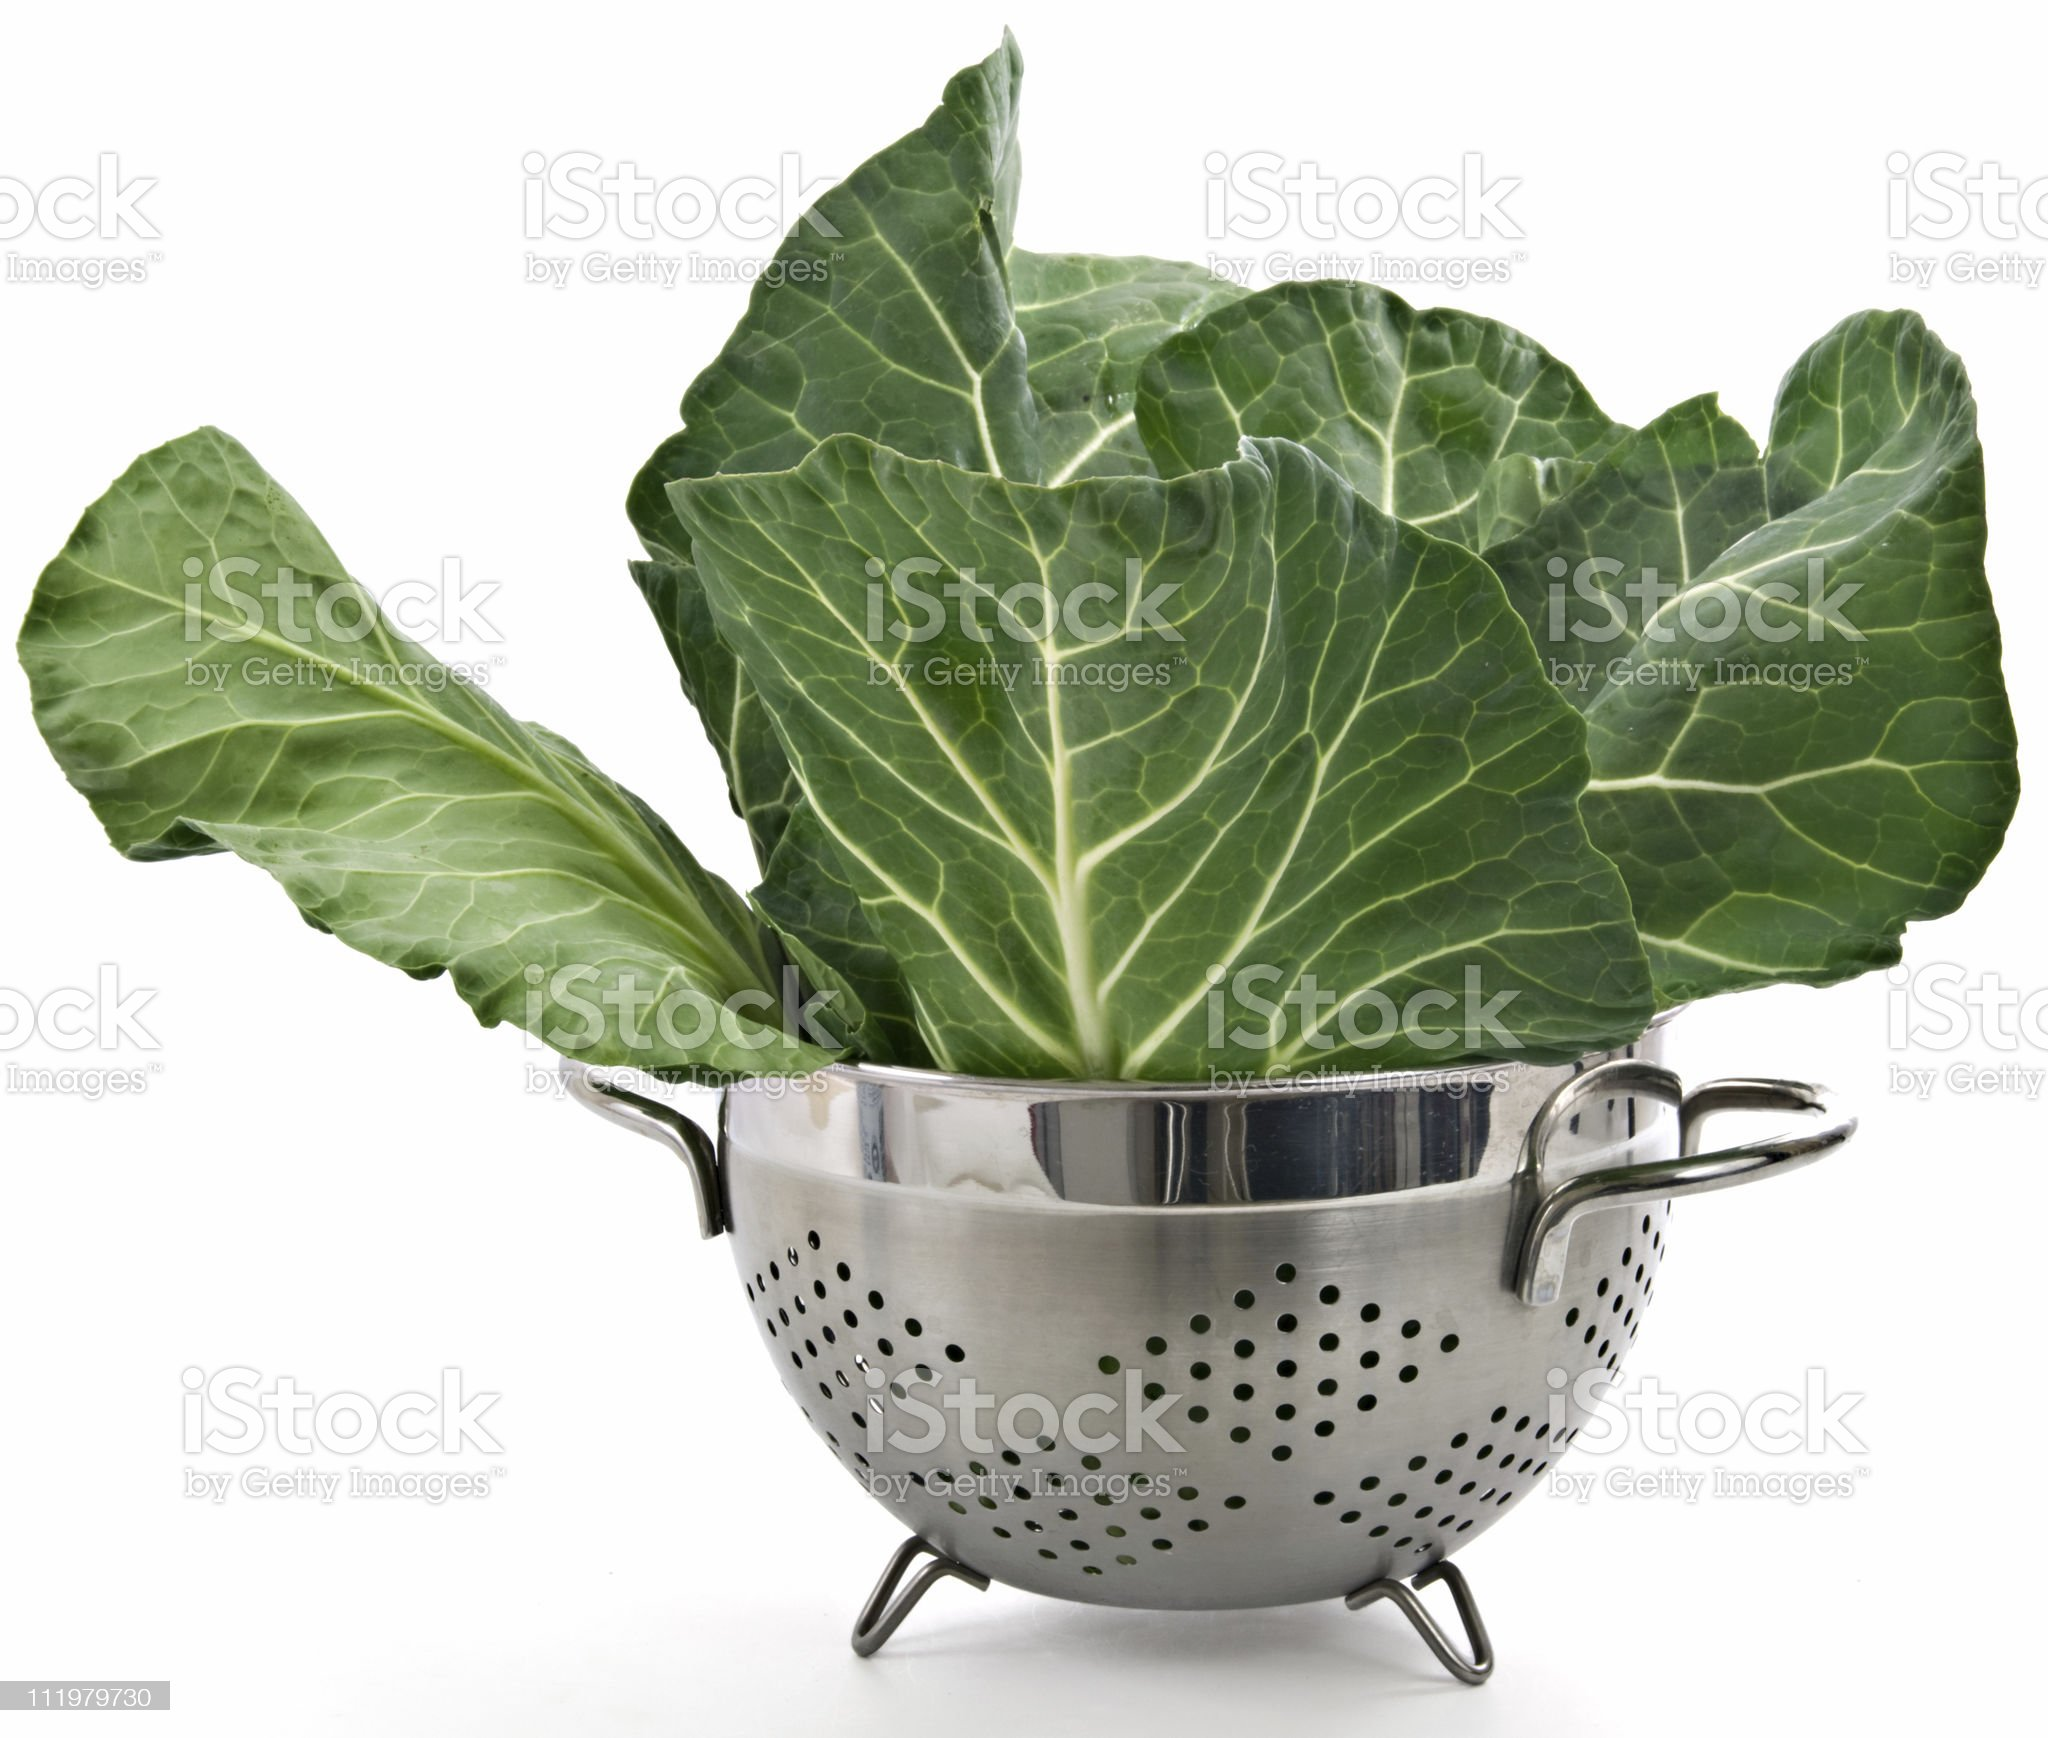 Organic Green Collards in a Collander royalty-free stock photo